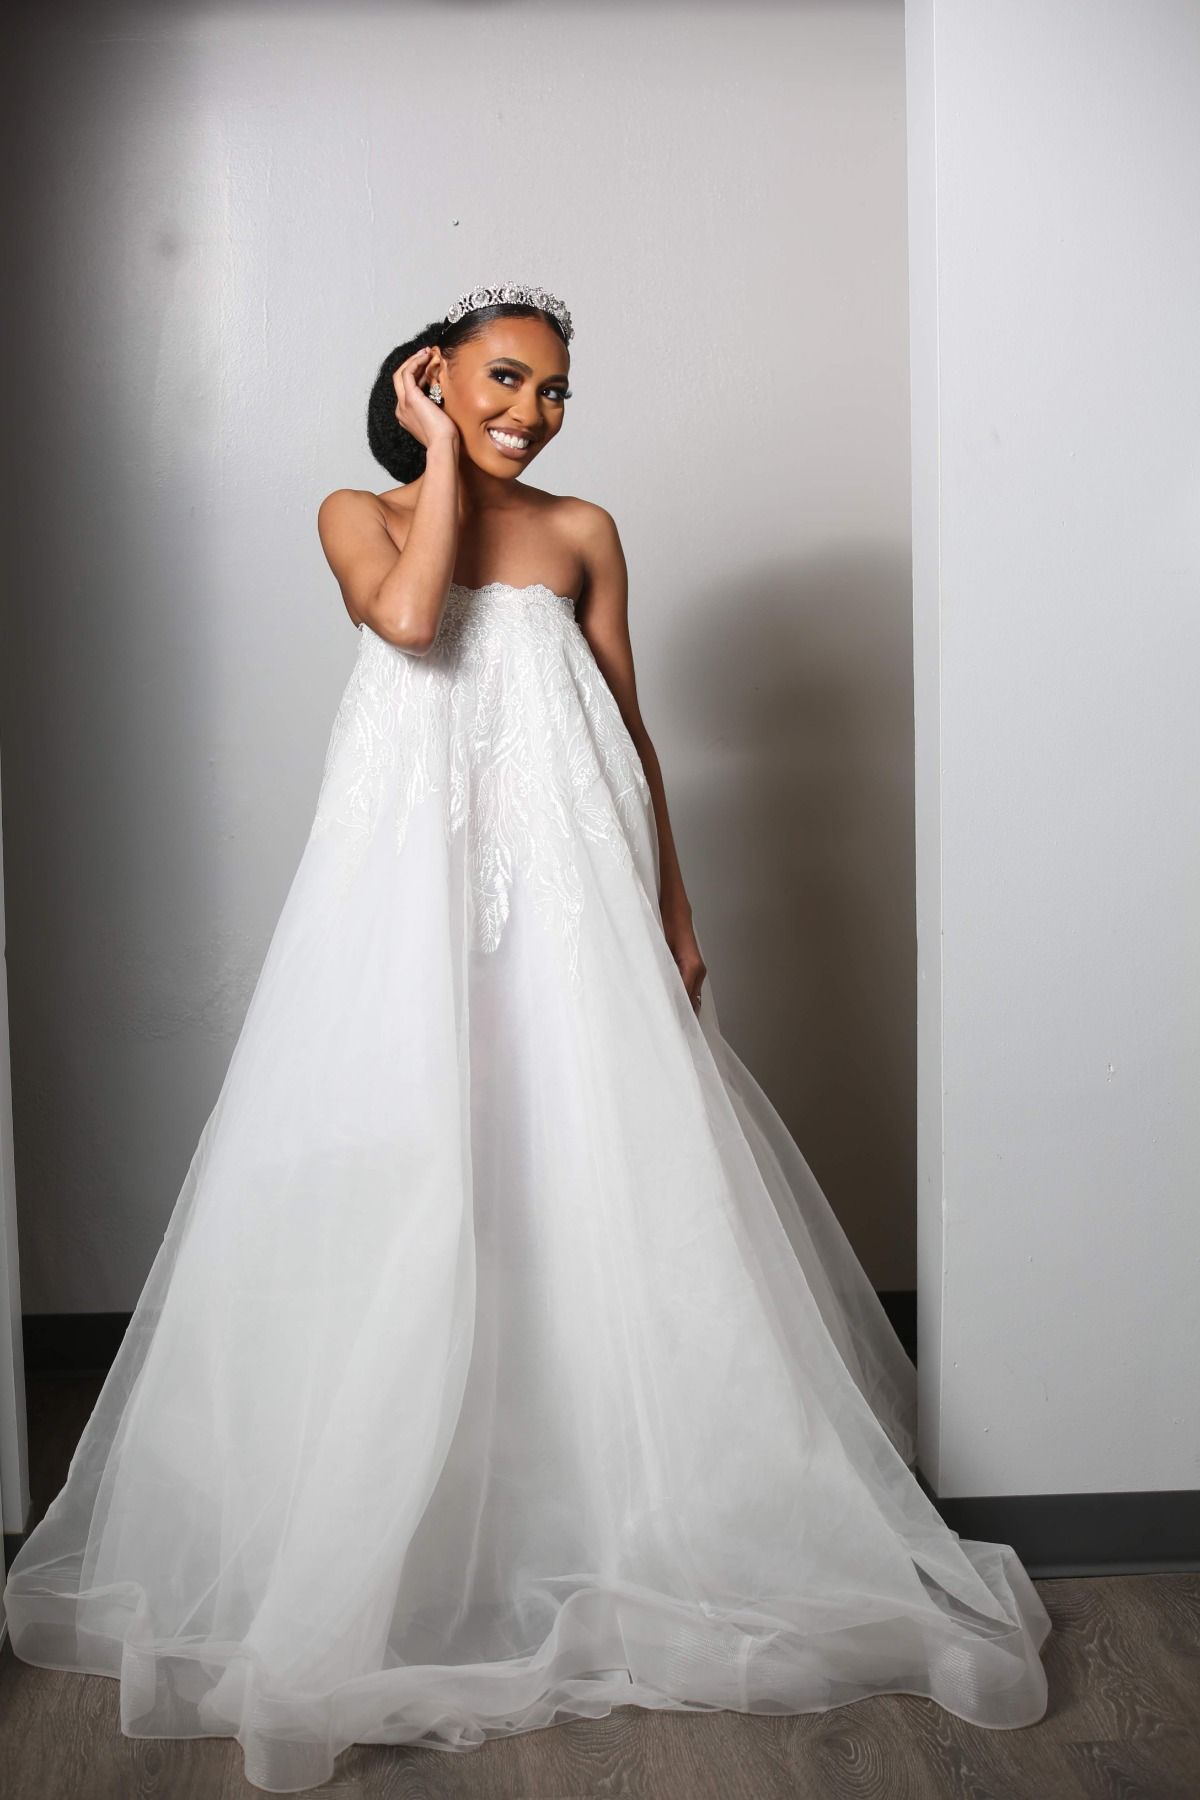 4 Tips For Dress Shopping During Covid19